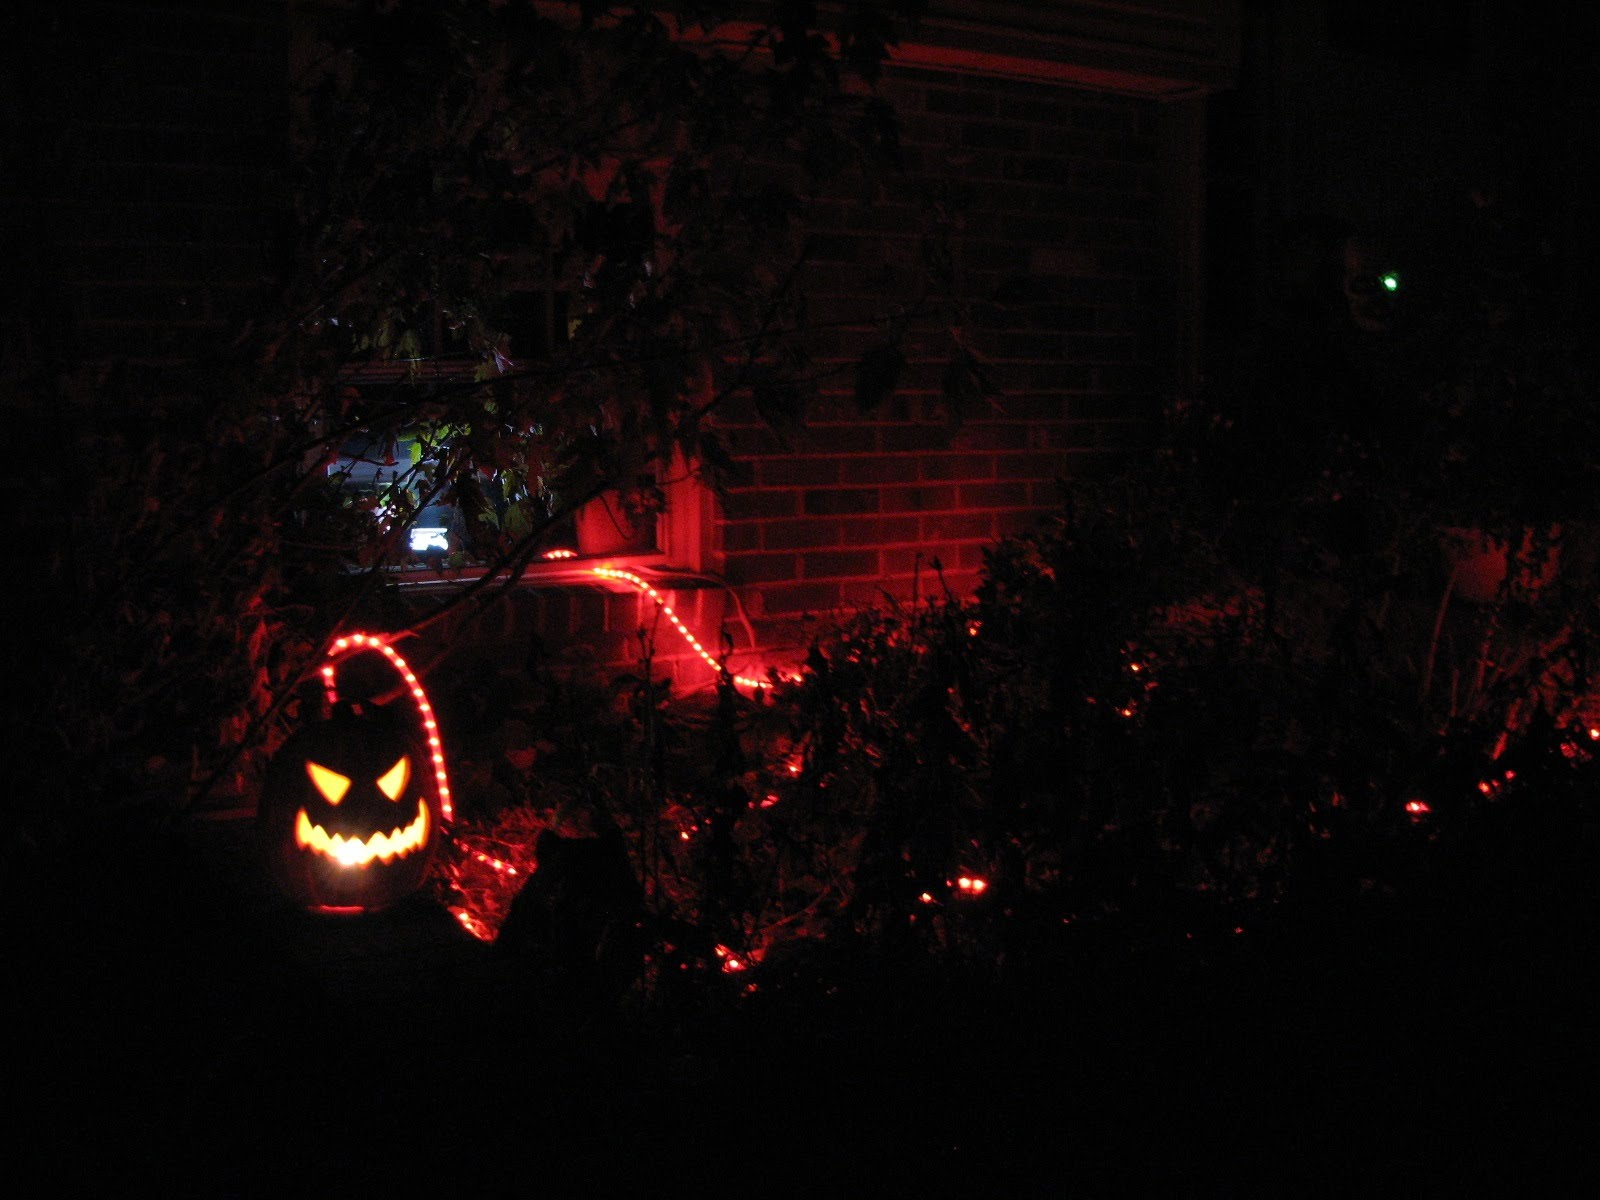 https://sites.google.com/site/vervemonkeyproject/Home/images/web-images/House_Halloween_2011.jpg